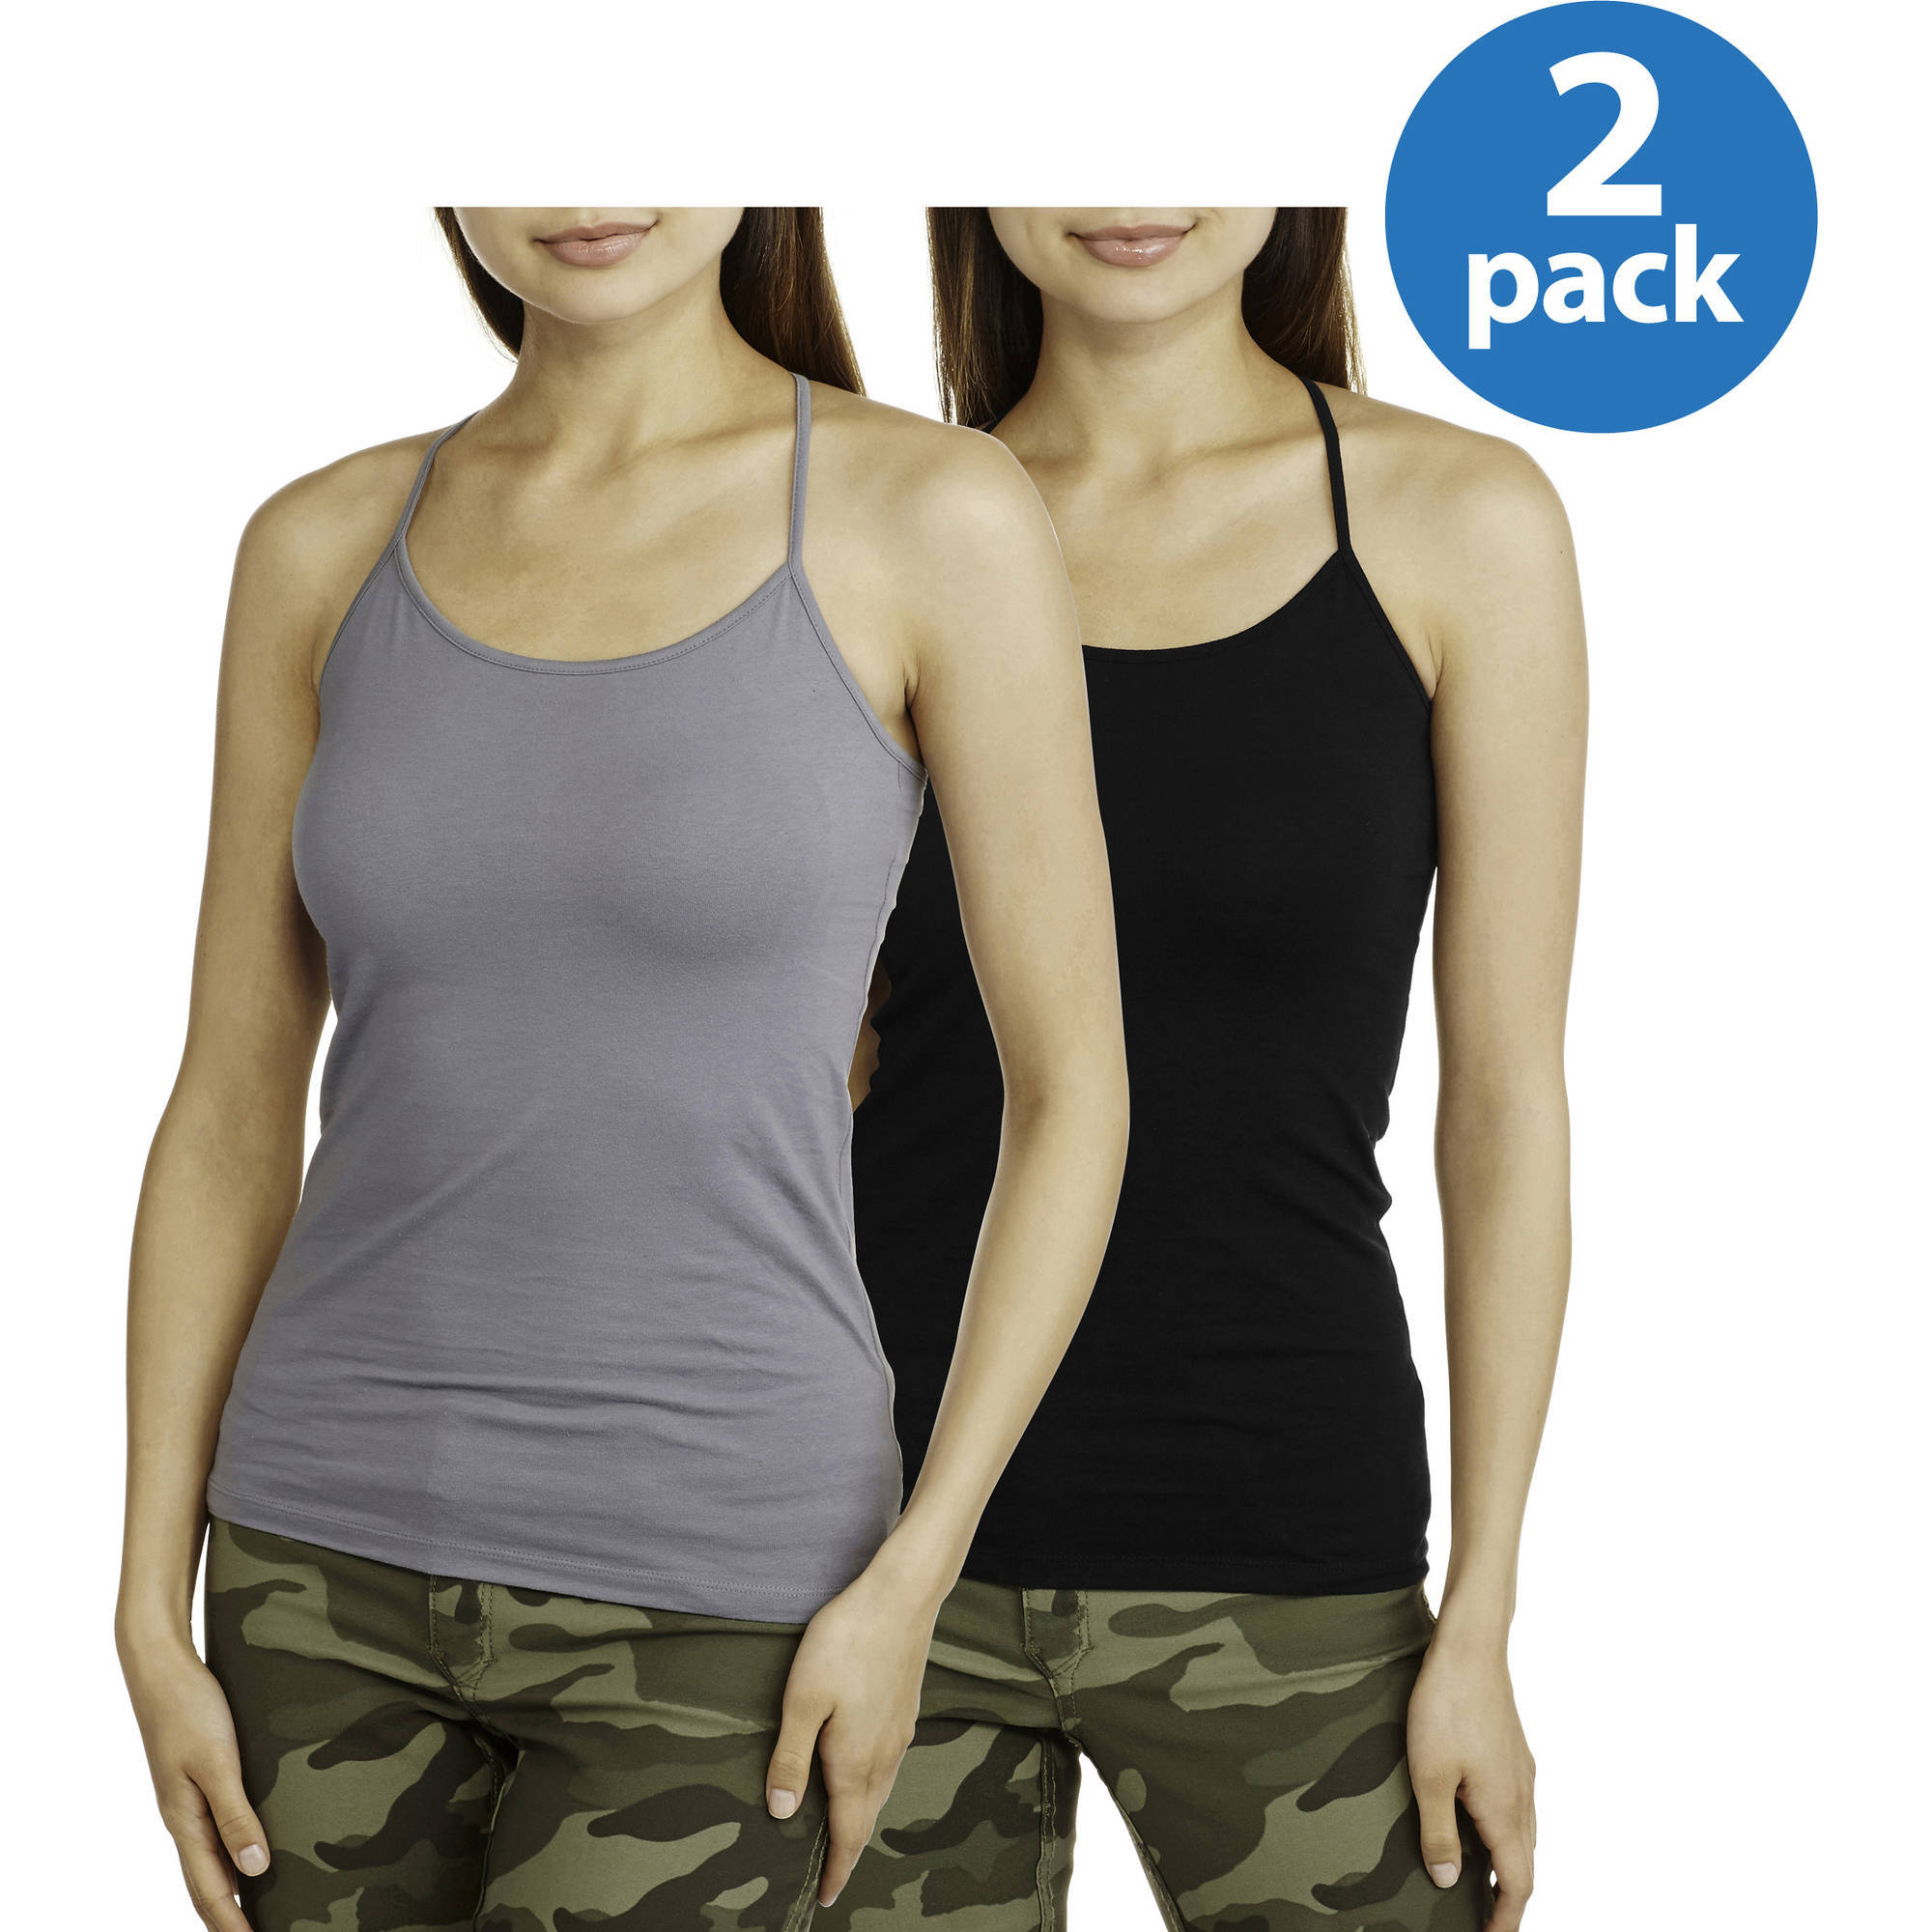 No Boundaries Juniors Essential Cami, 2-Pack Value Bundle - Only $1.68 Per Cami